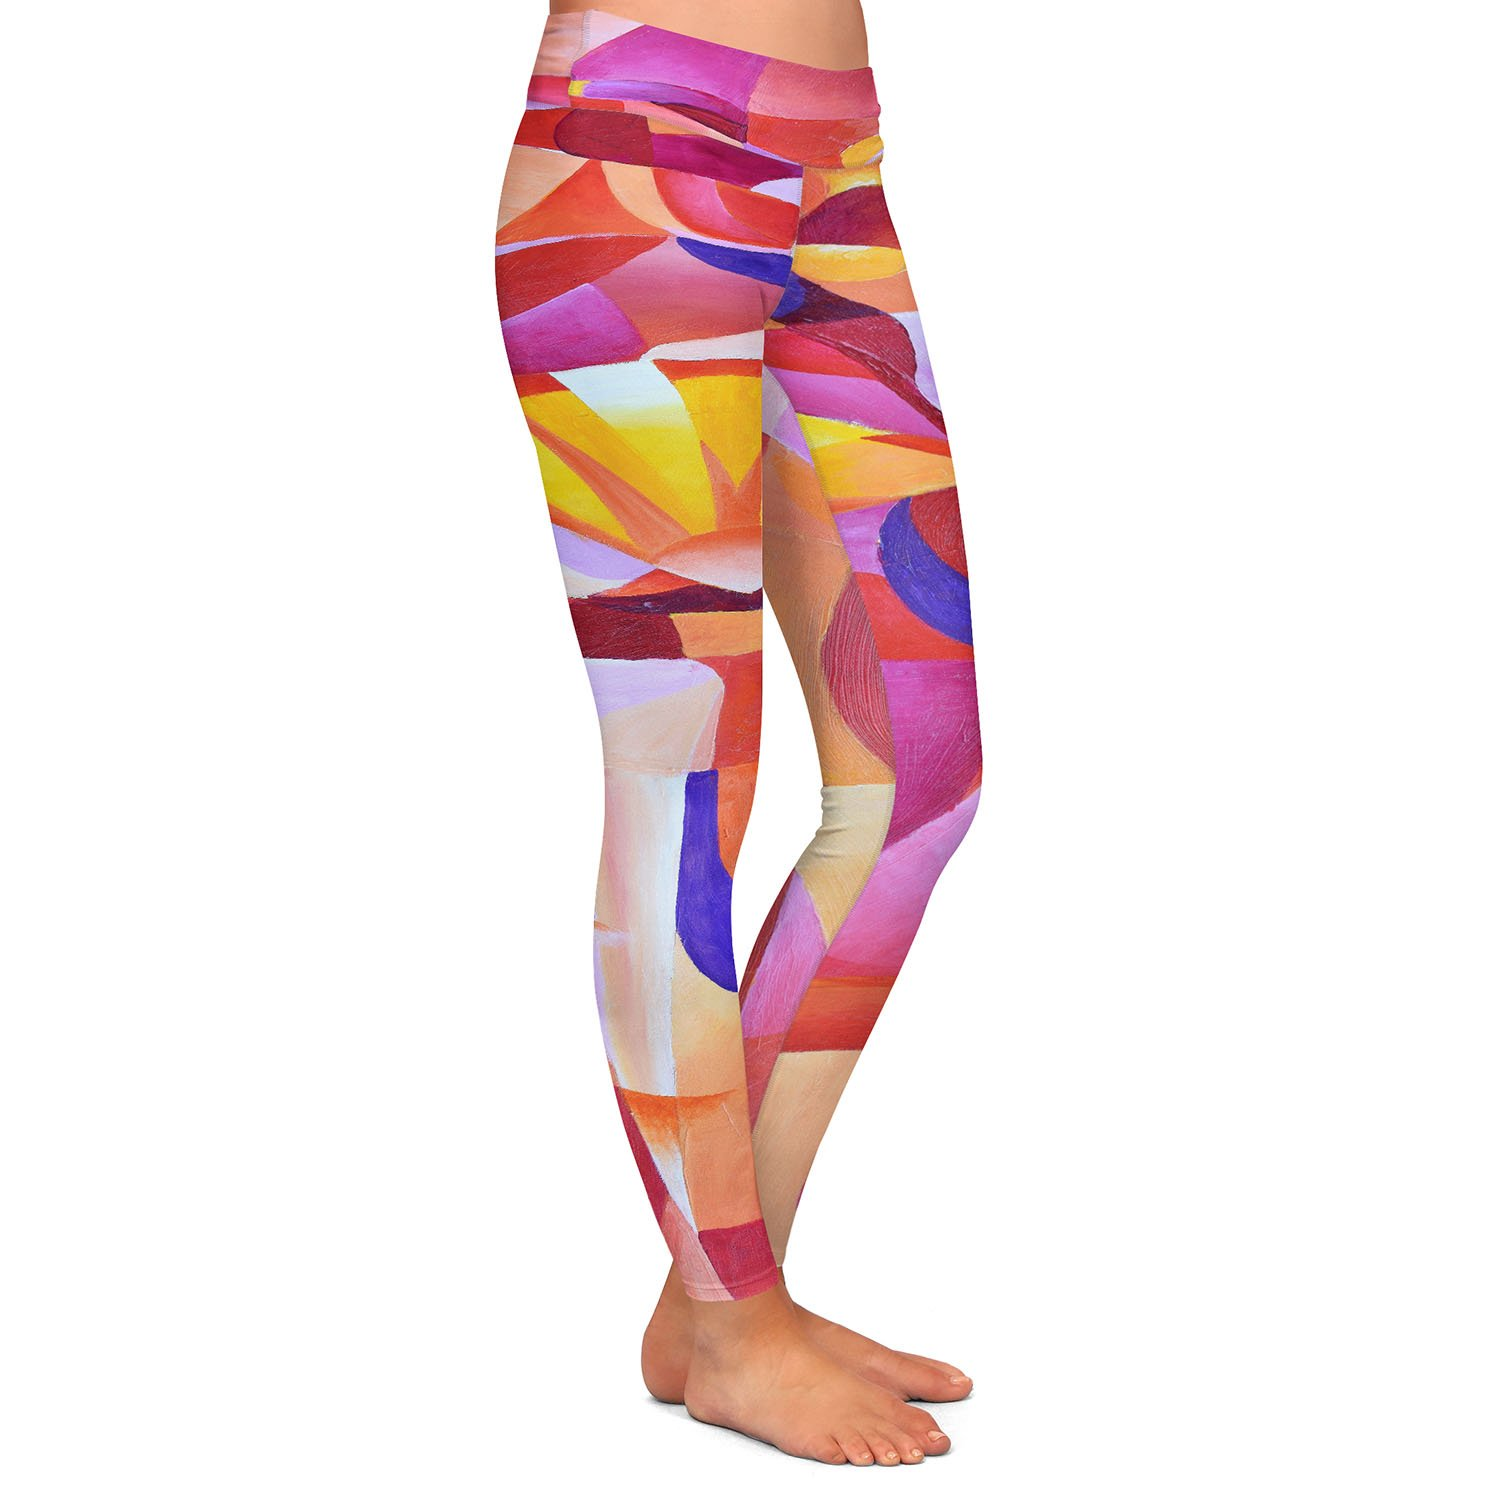 Athletic Yoga Leggings from DiaNoche Designs by Gerry Segismundo Dancer with Fan Cubism 2